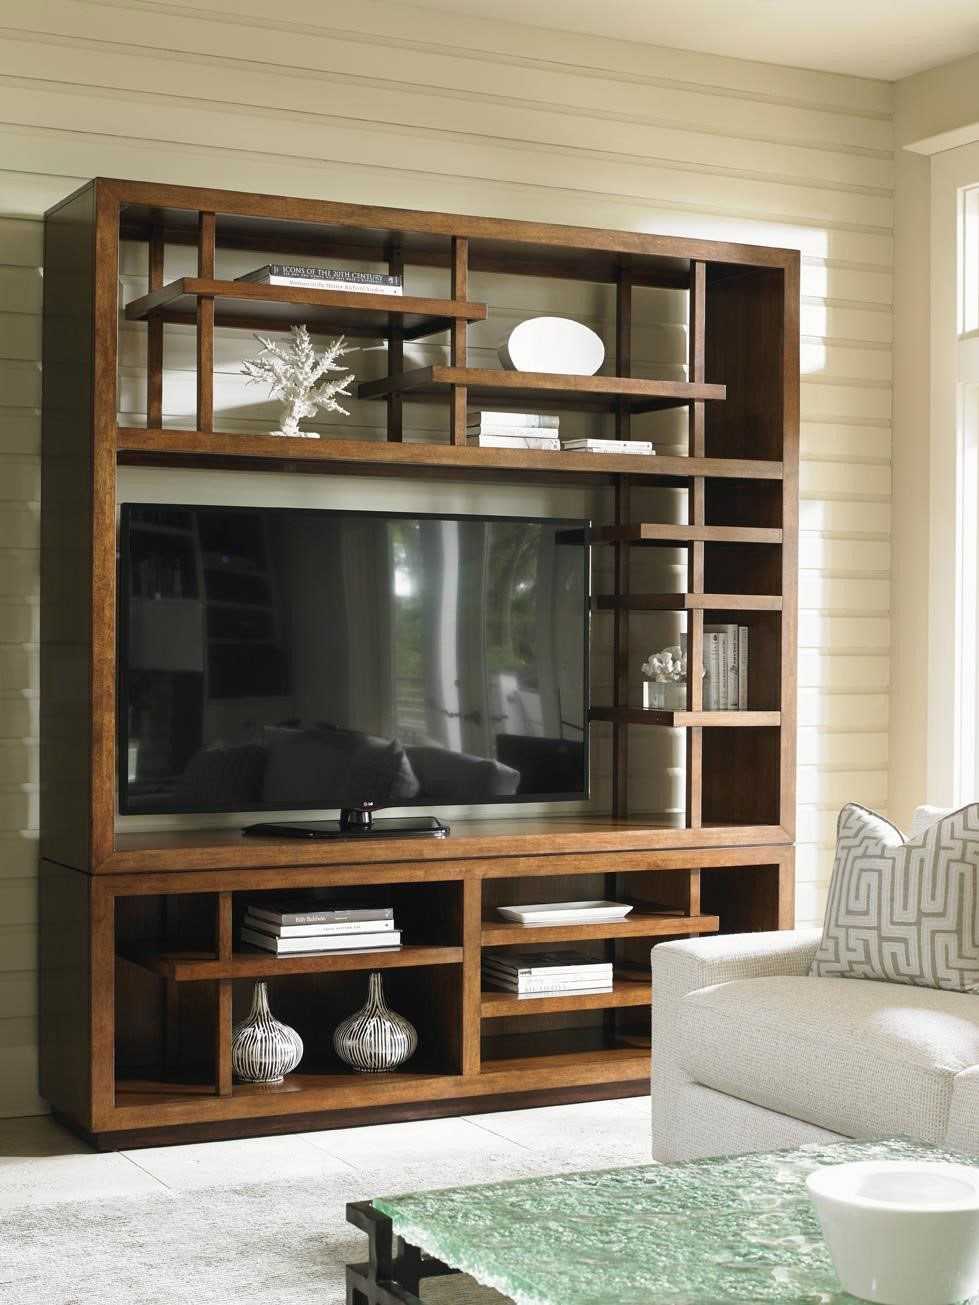 wall units to inspire your interior decorator | baer's furniture